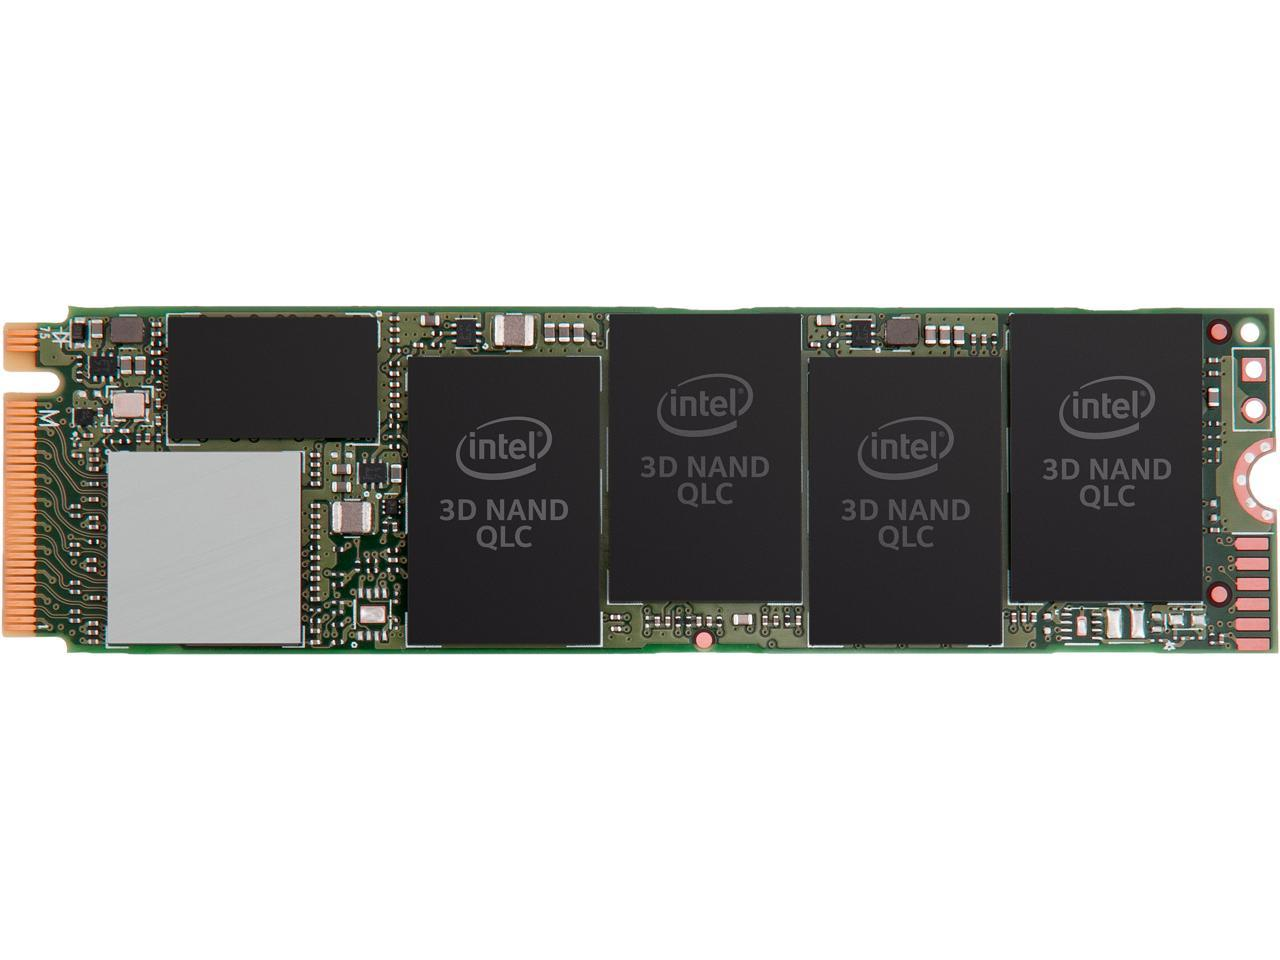 Intel 660p Series M.2 2280 512GB PCI-Express 3.0 x4 3D NAND Internal Solid State Drive